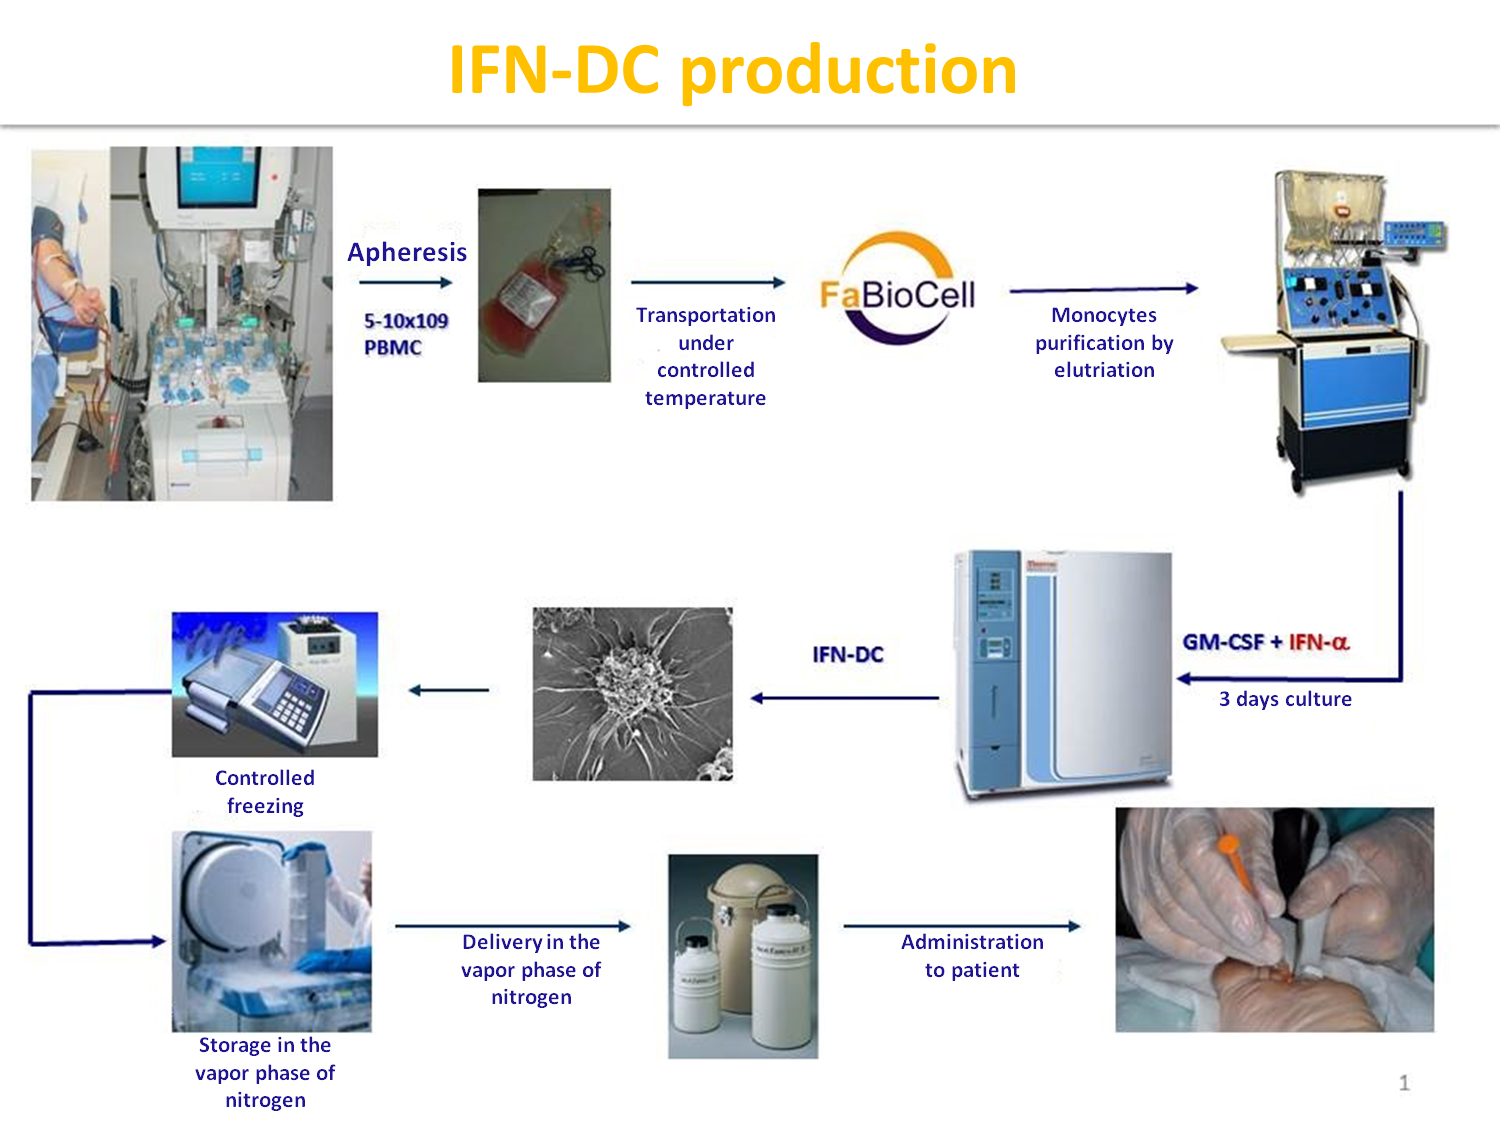 IFN-DC production